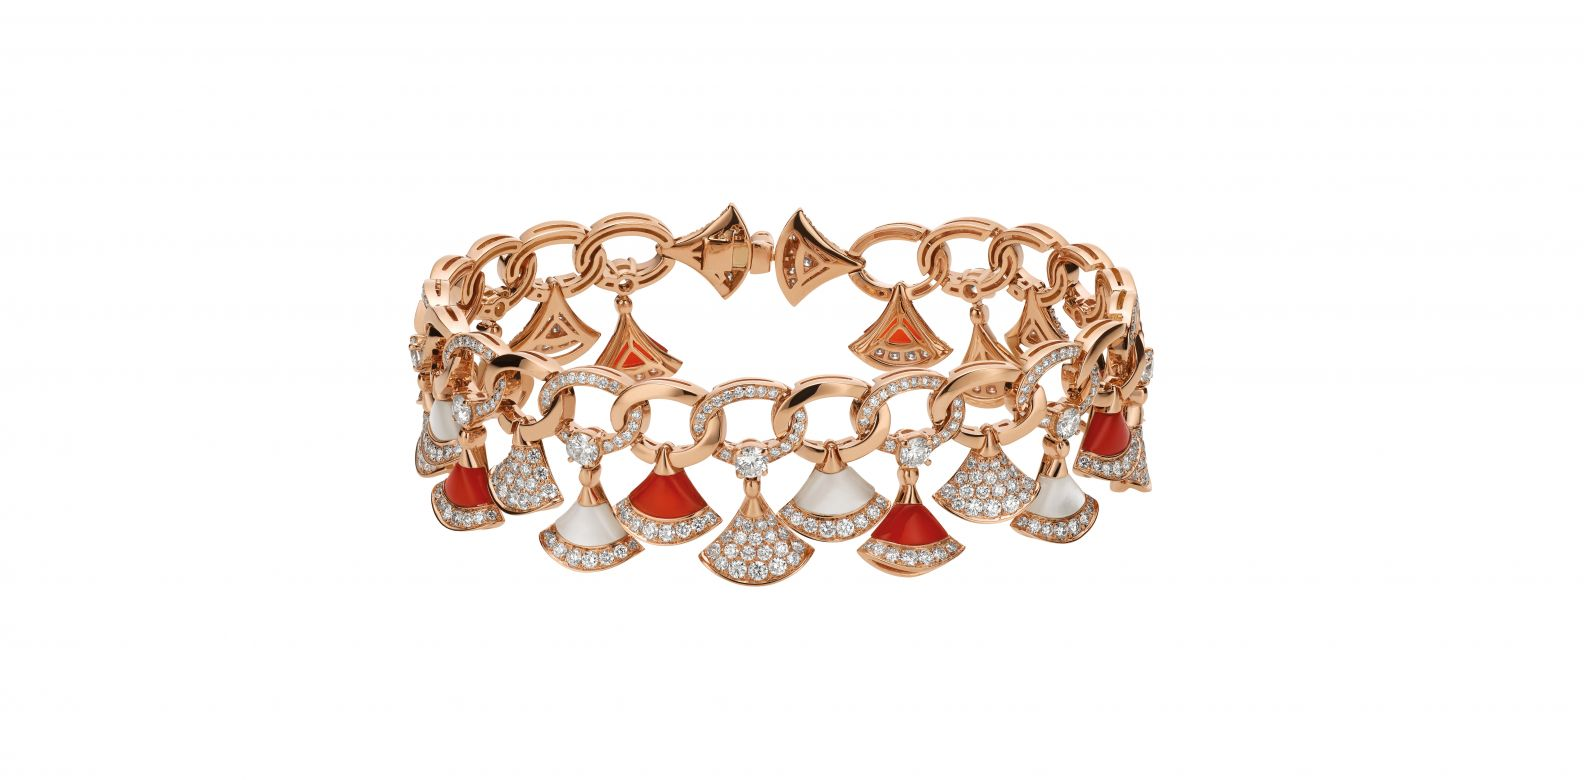 Bracelet in pink gold with carnelian, mother-of-pearl and diamonds (3.49cts)